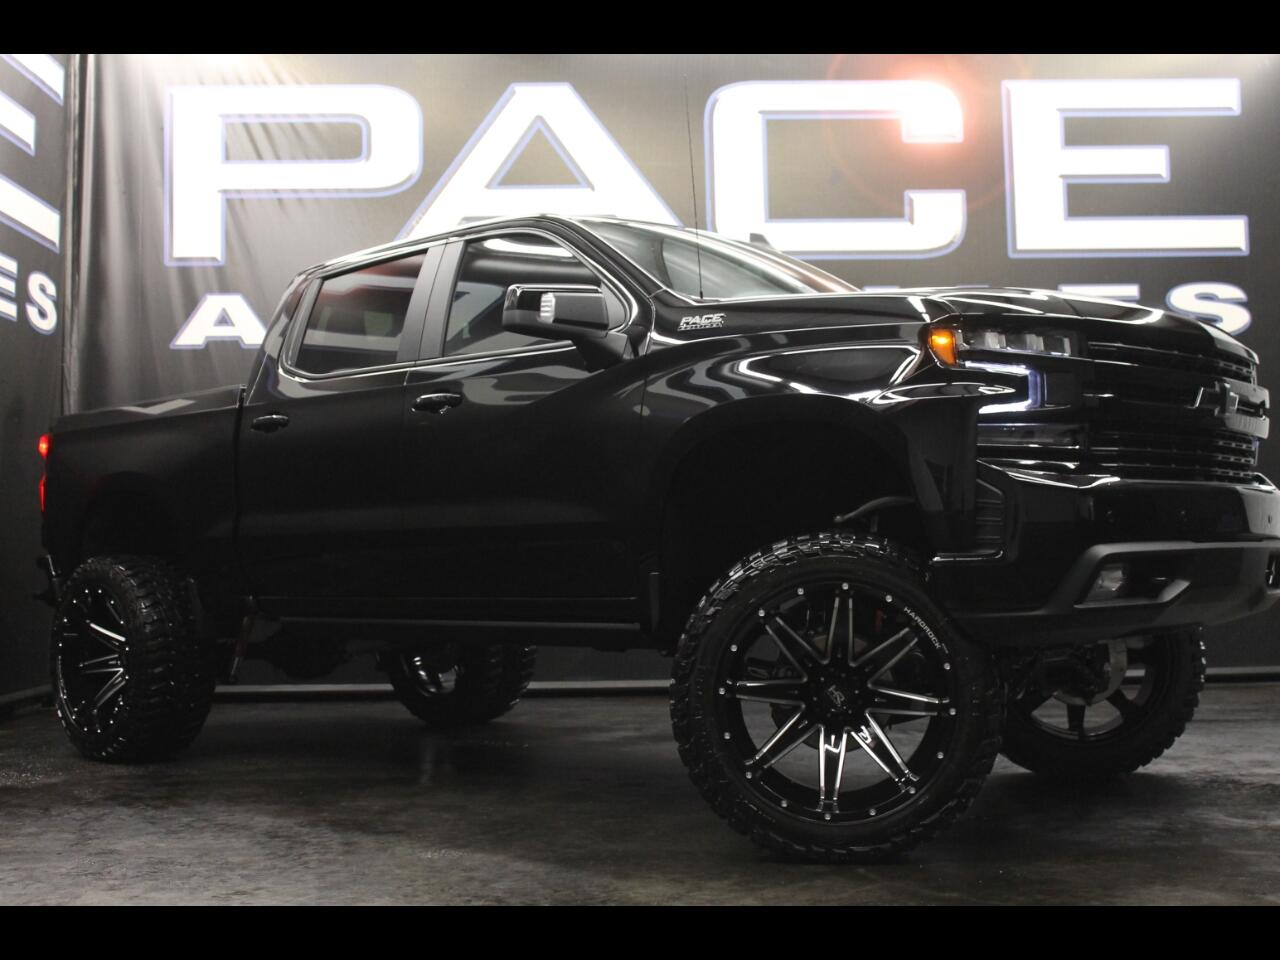 2019 Chevrolet Silverado 1500 4WD Crew Cab Lifted Pace Edition